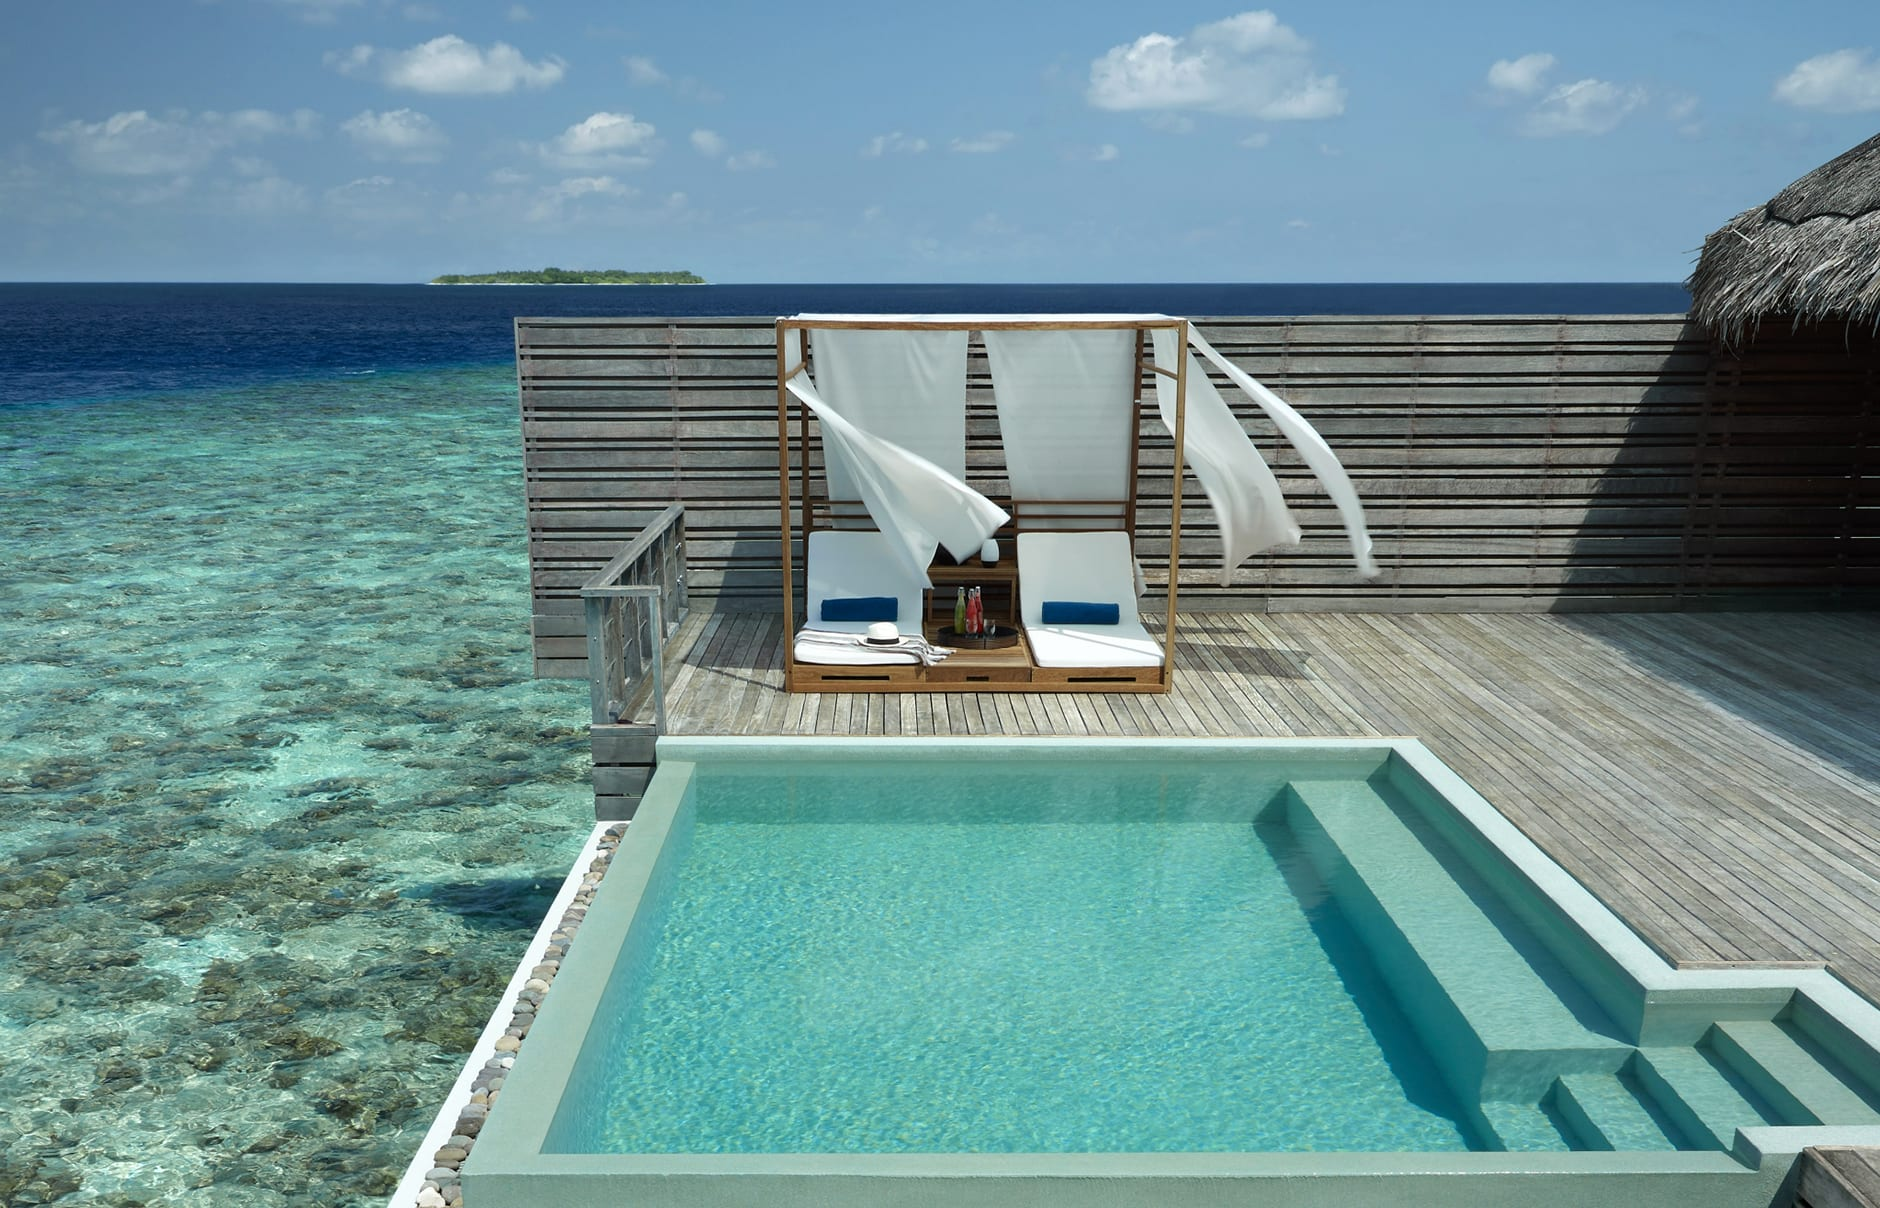 Dusit Thani Maldives, Baa Atoll, Maldives. Hotel Review by TravelPlusStyle. Photo © Dusit International